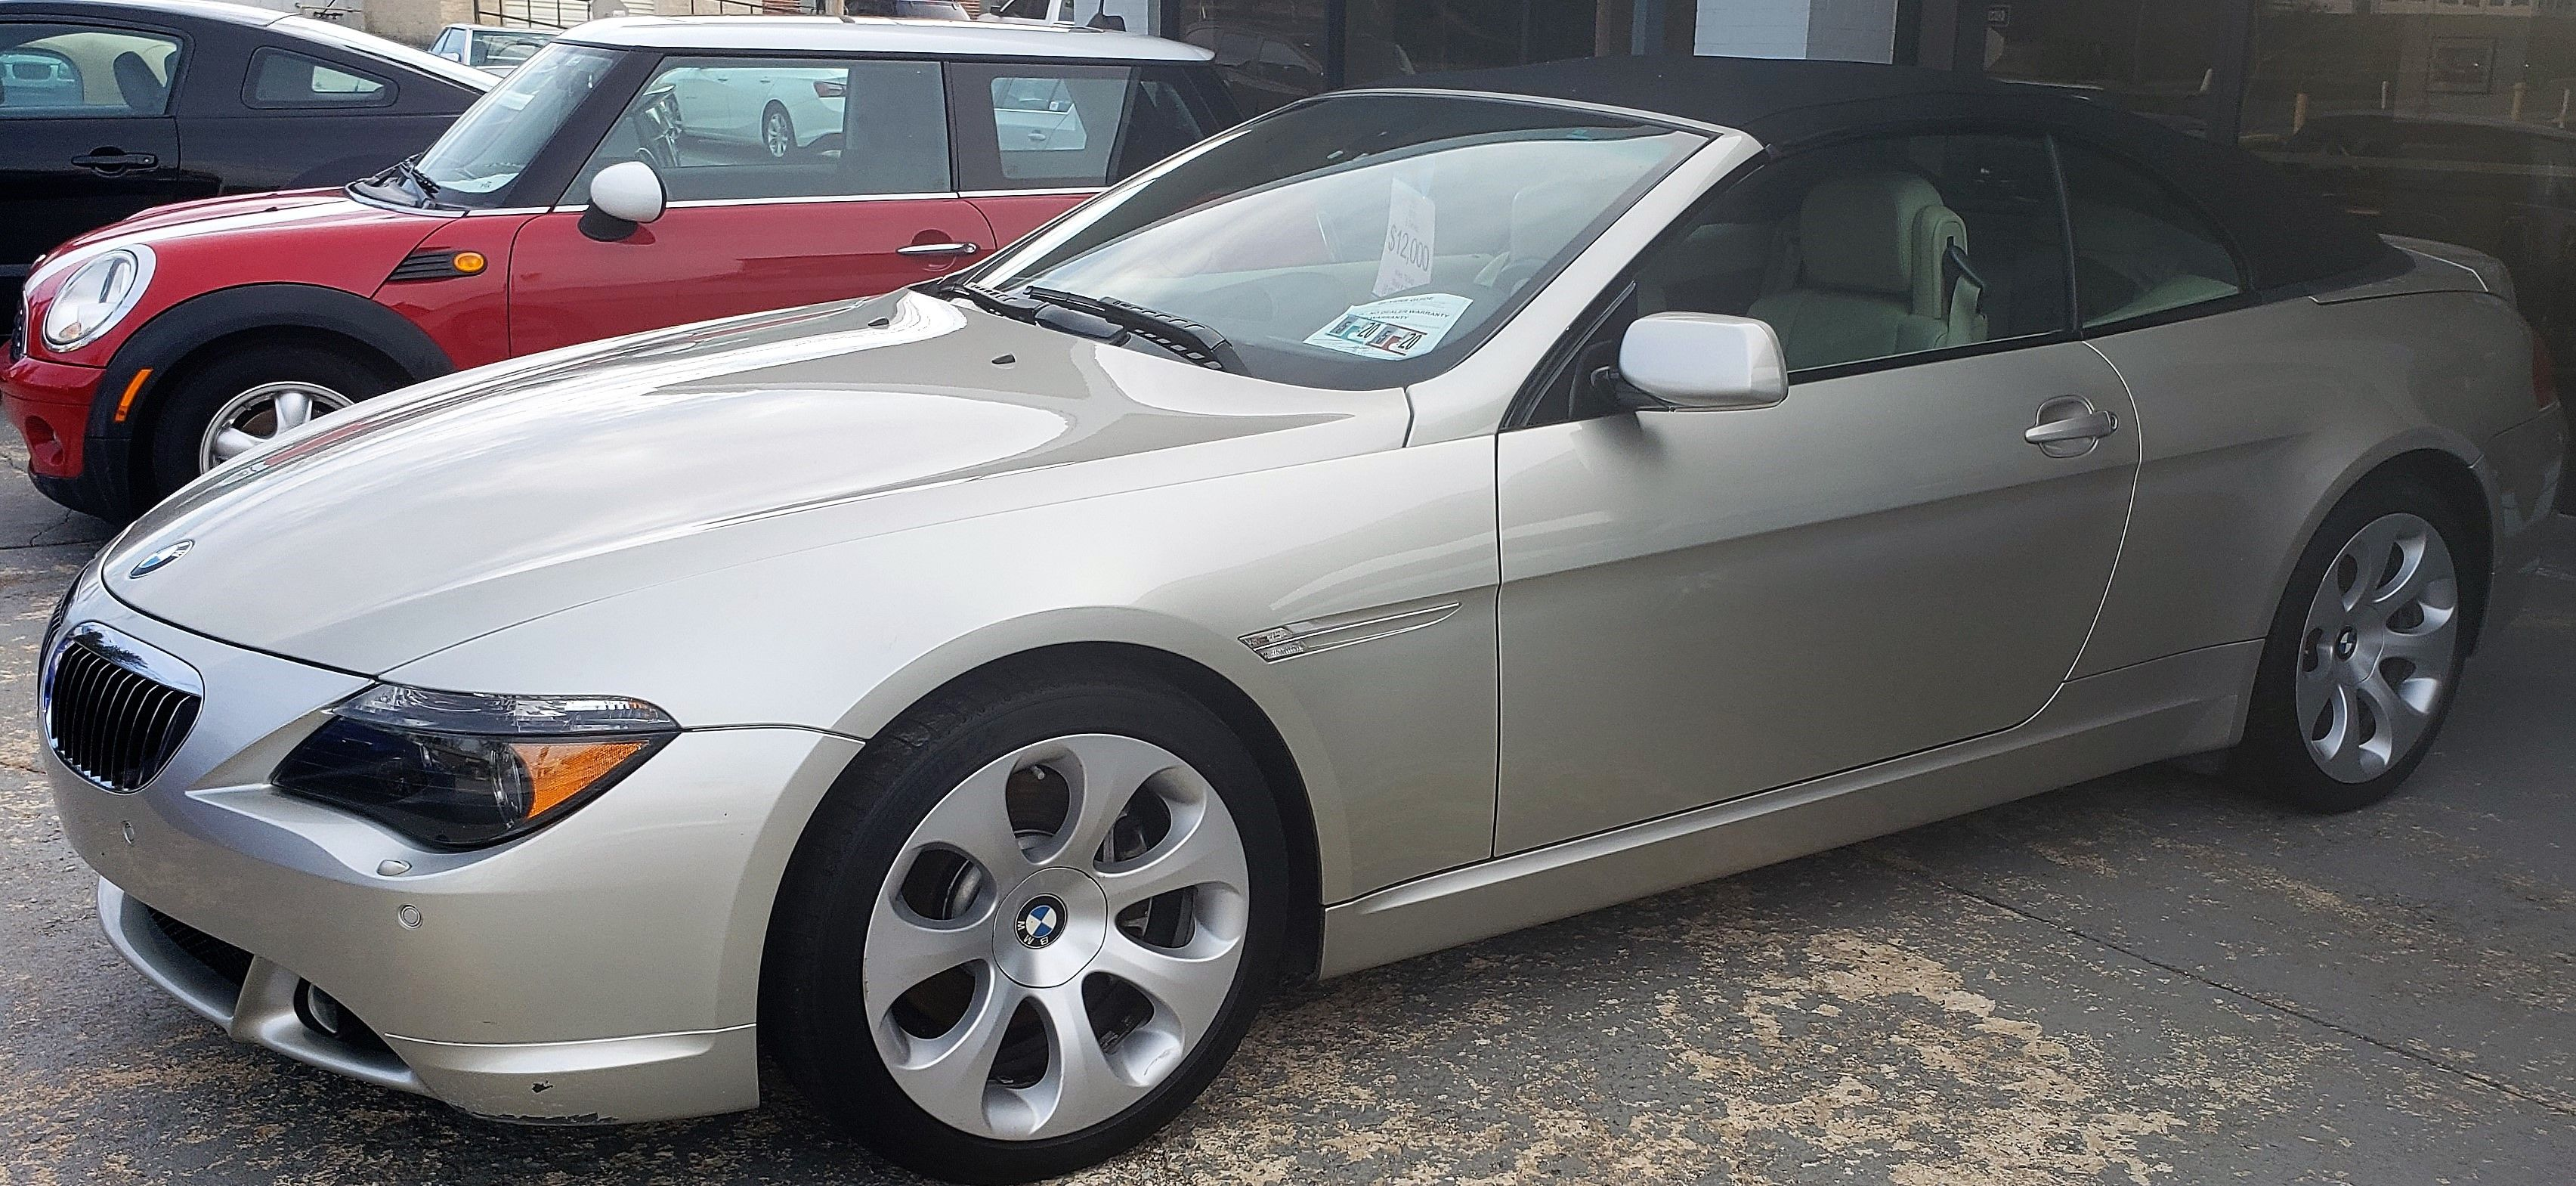 2006 Bmw 650i Convertible Our Price 12 500 Miles 79 540 For